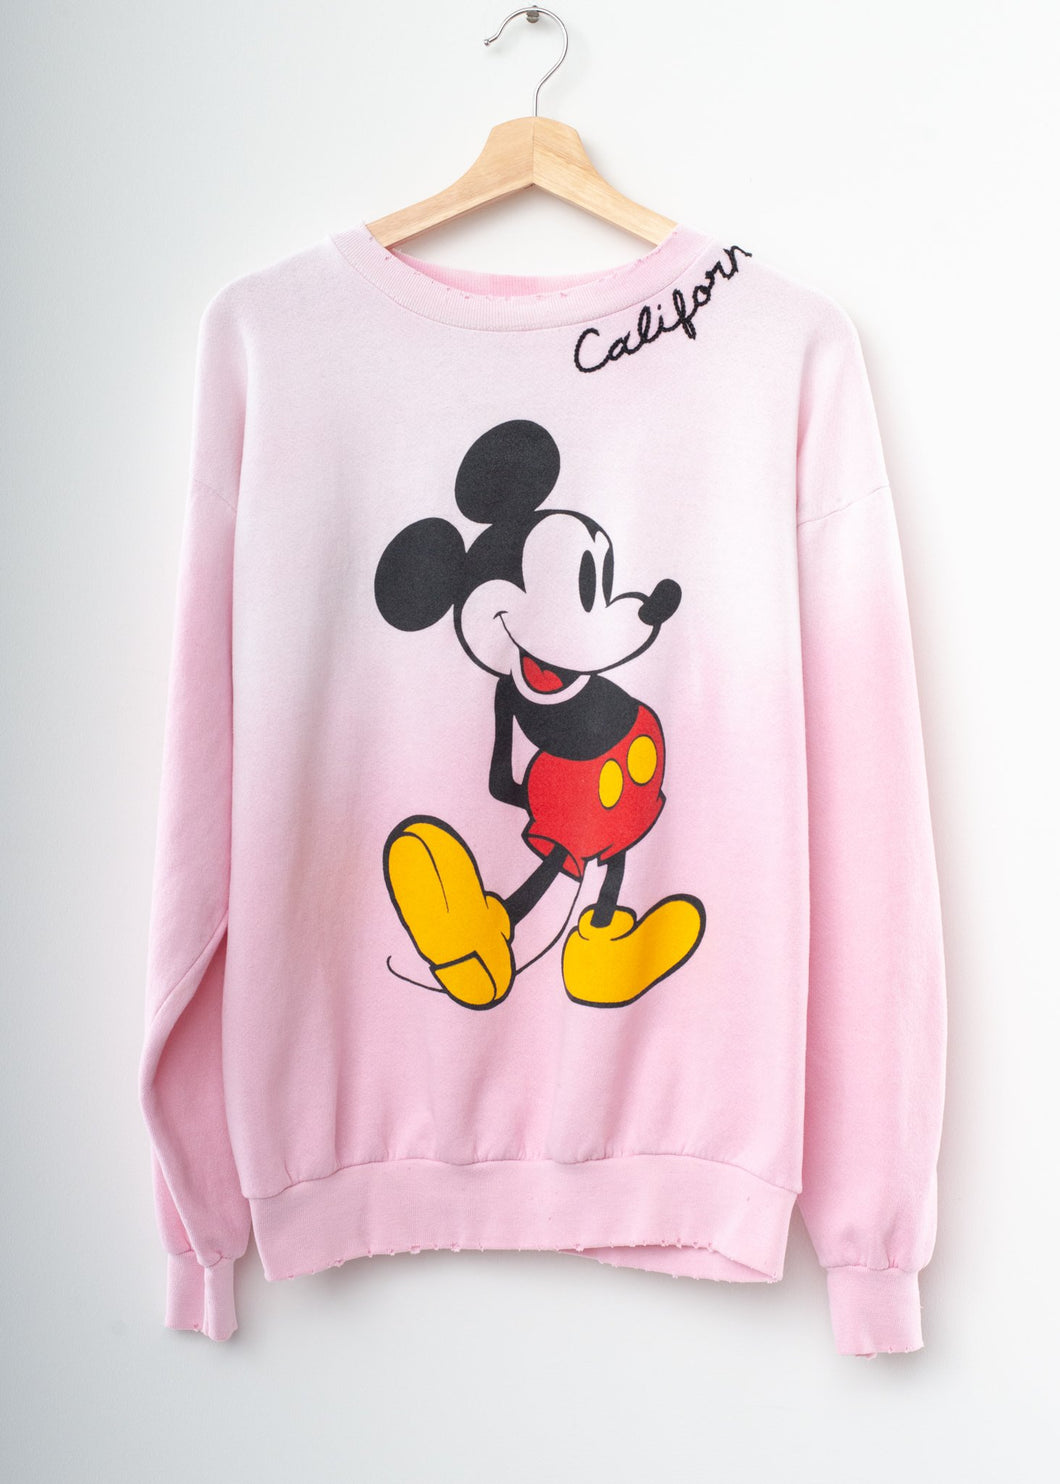 Vintage Mickey Frost Pink Sweatshirt - Customize Your Embroidery Wording